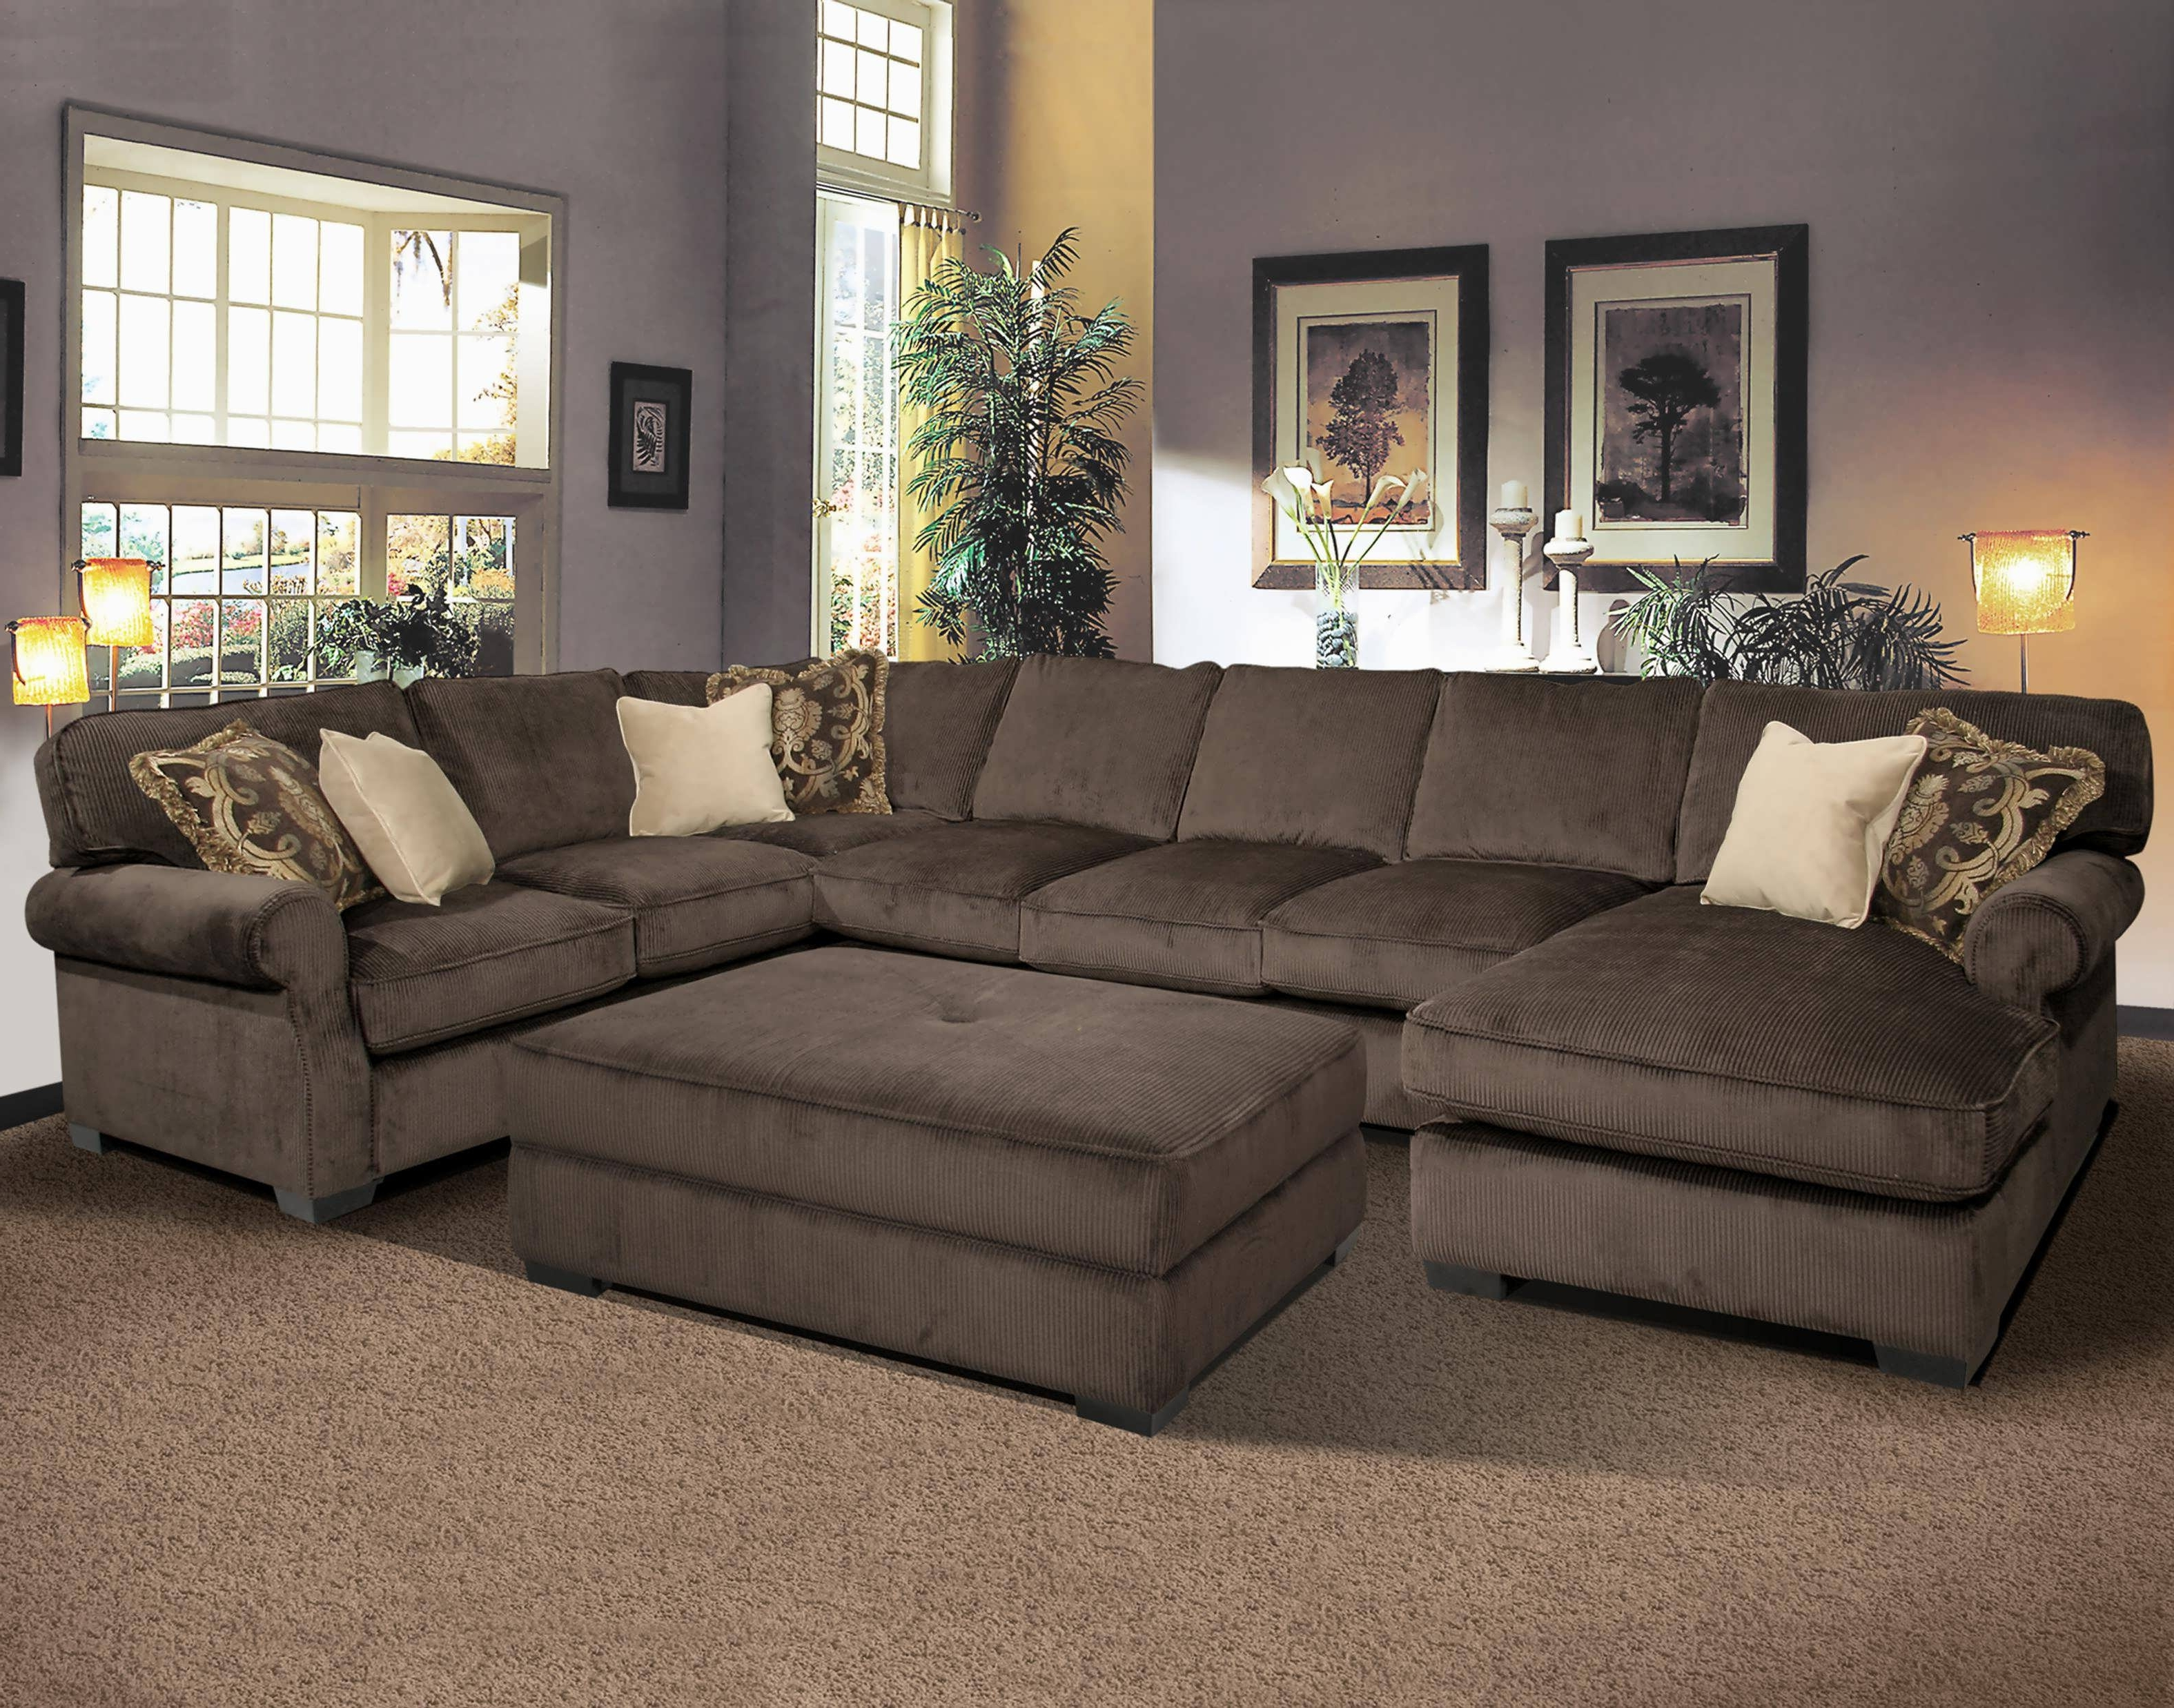 Sofa : Sofas And Sectionals Leather Sectional Sofa With Chaise With Fashionable Chaise Sectionals (View 10 of 15)